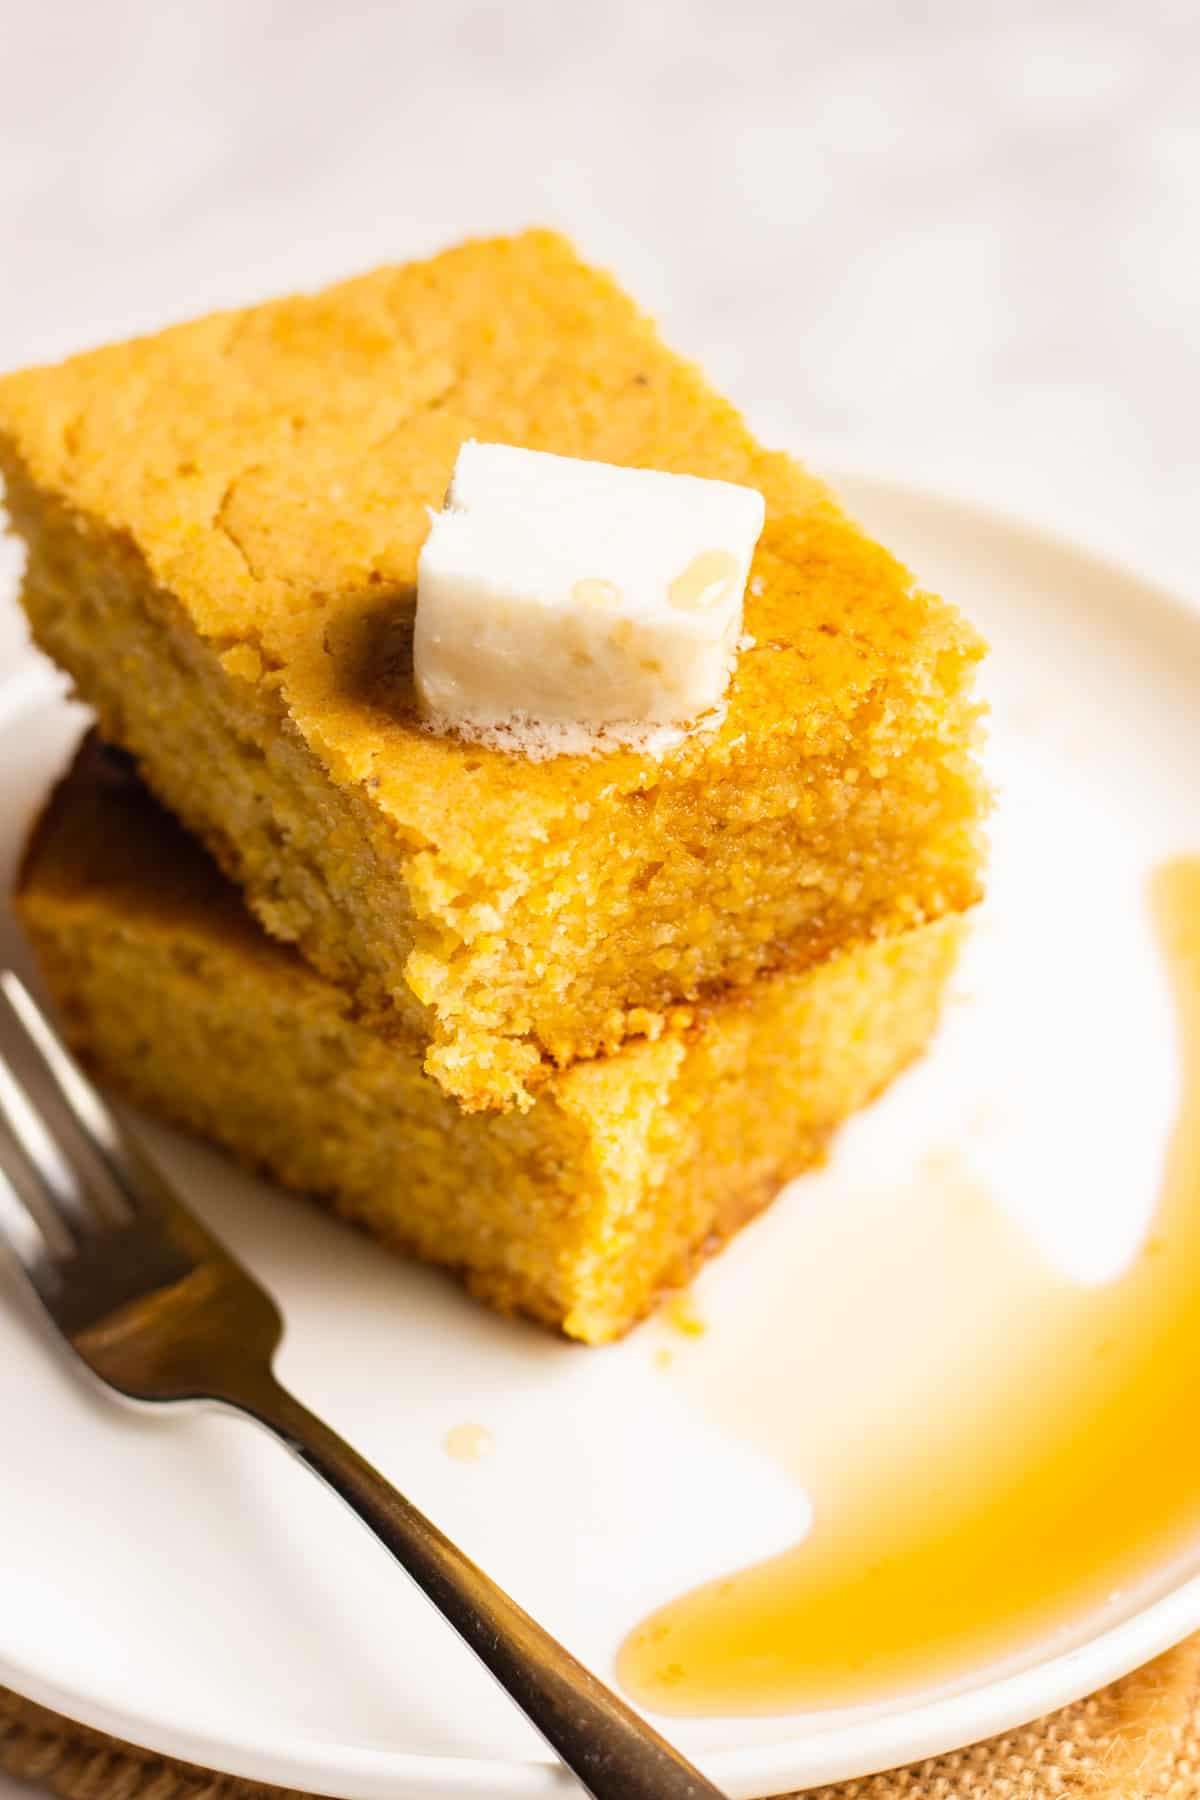 Two square cornmeal breads on a white plate